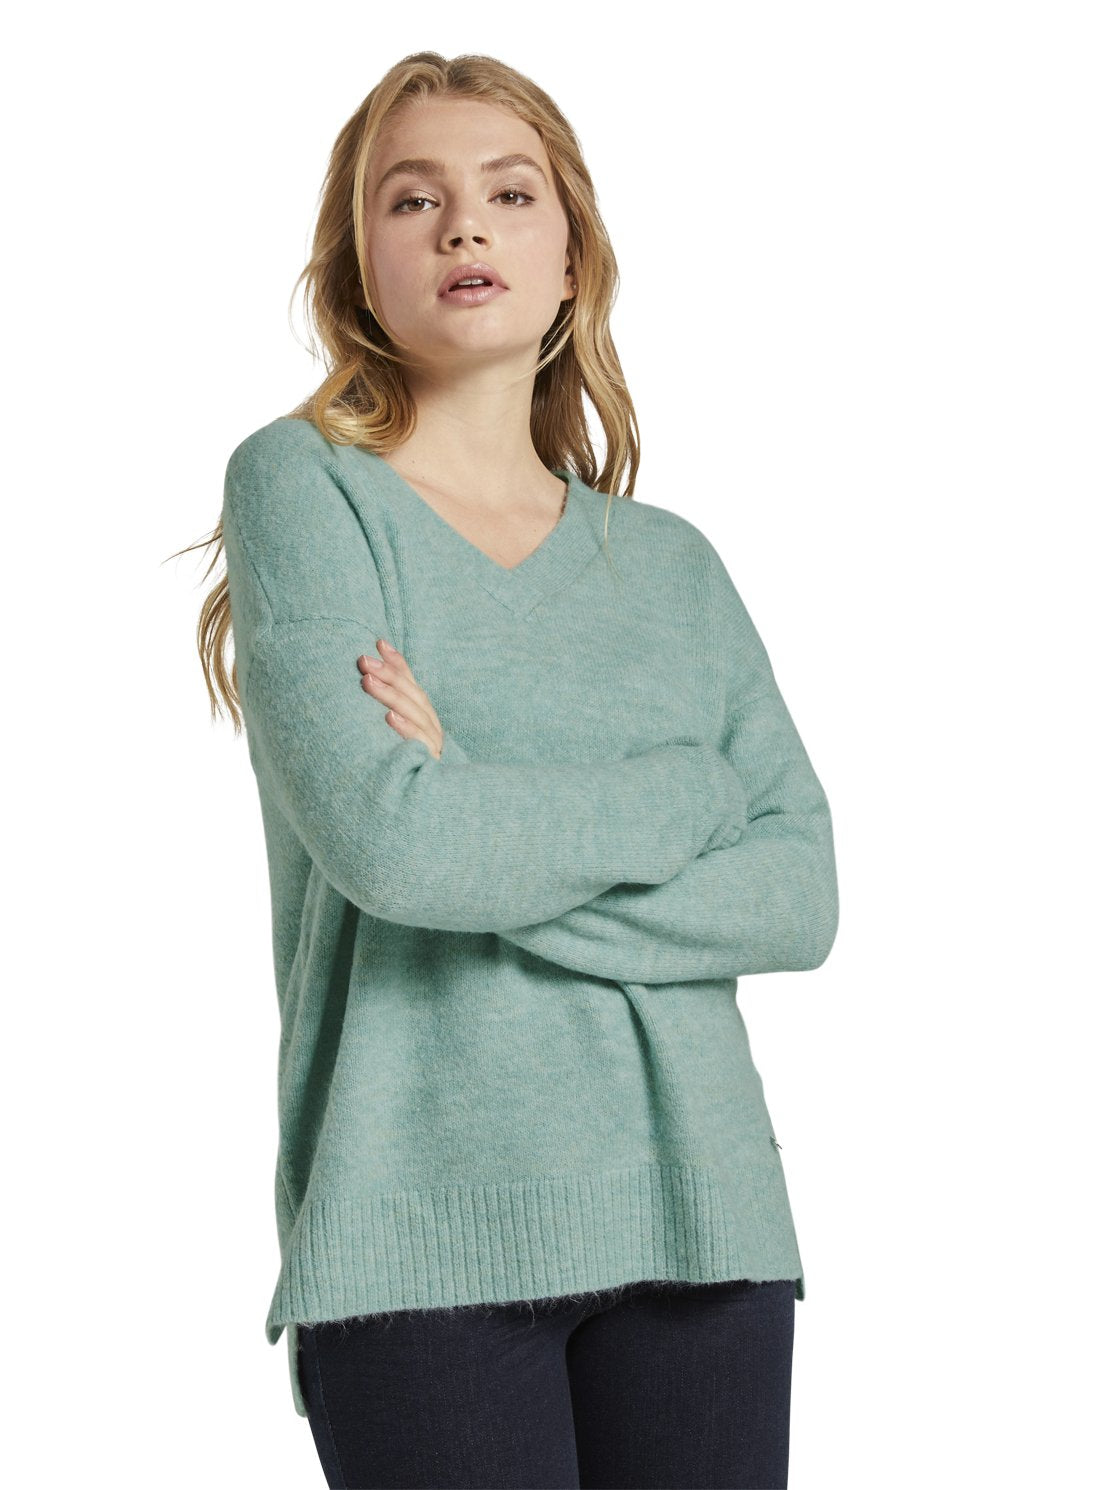 Tom Tailor 1021144 sweater green